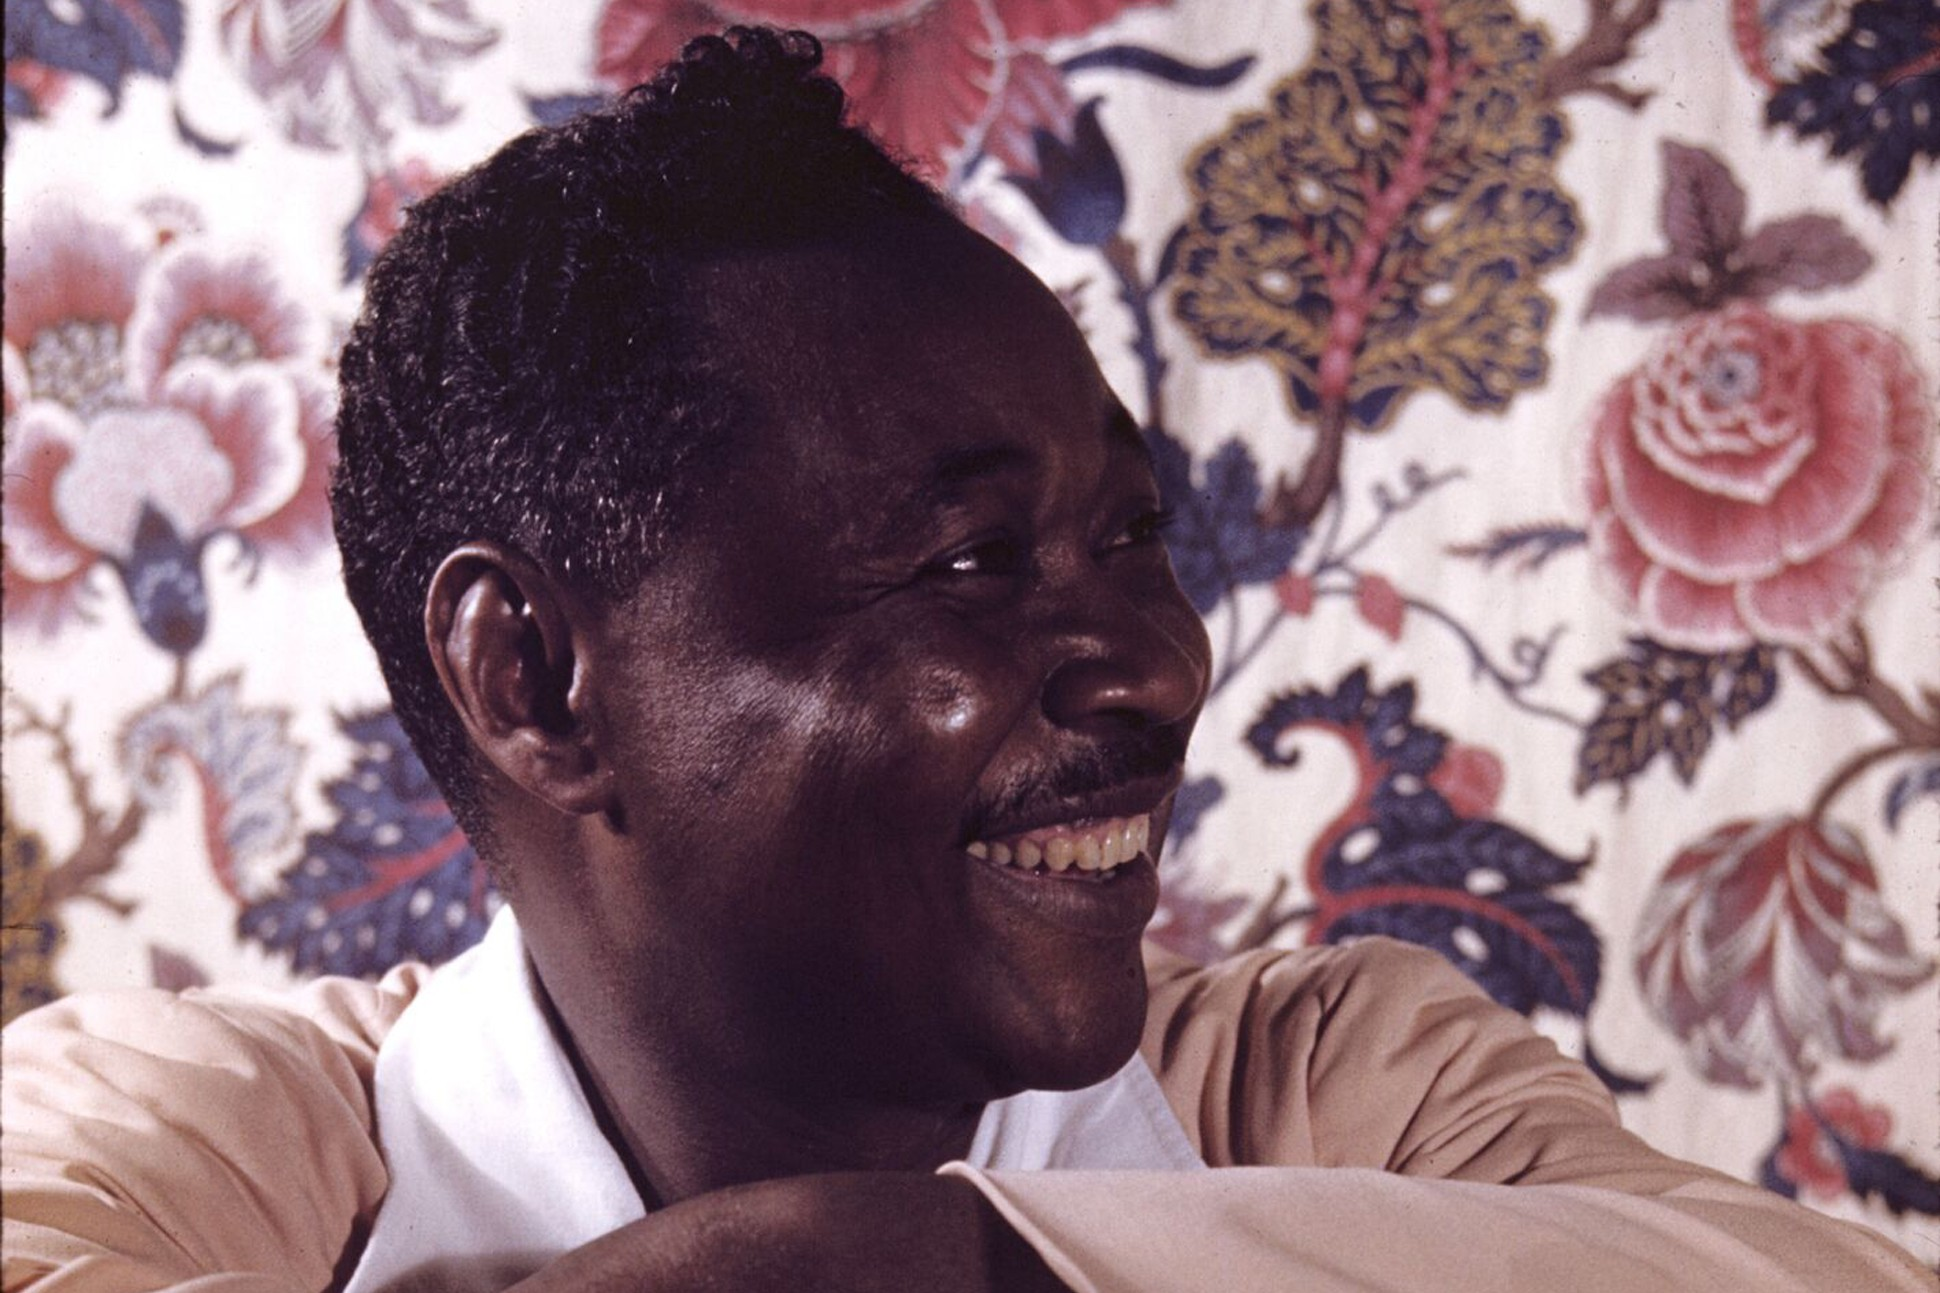 Photograph of Claude McKay in front of a floral background.